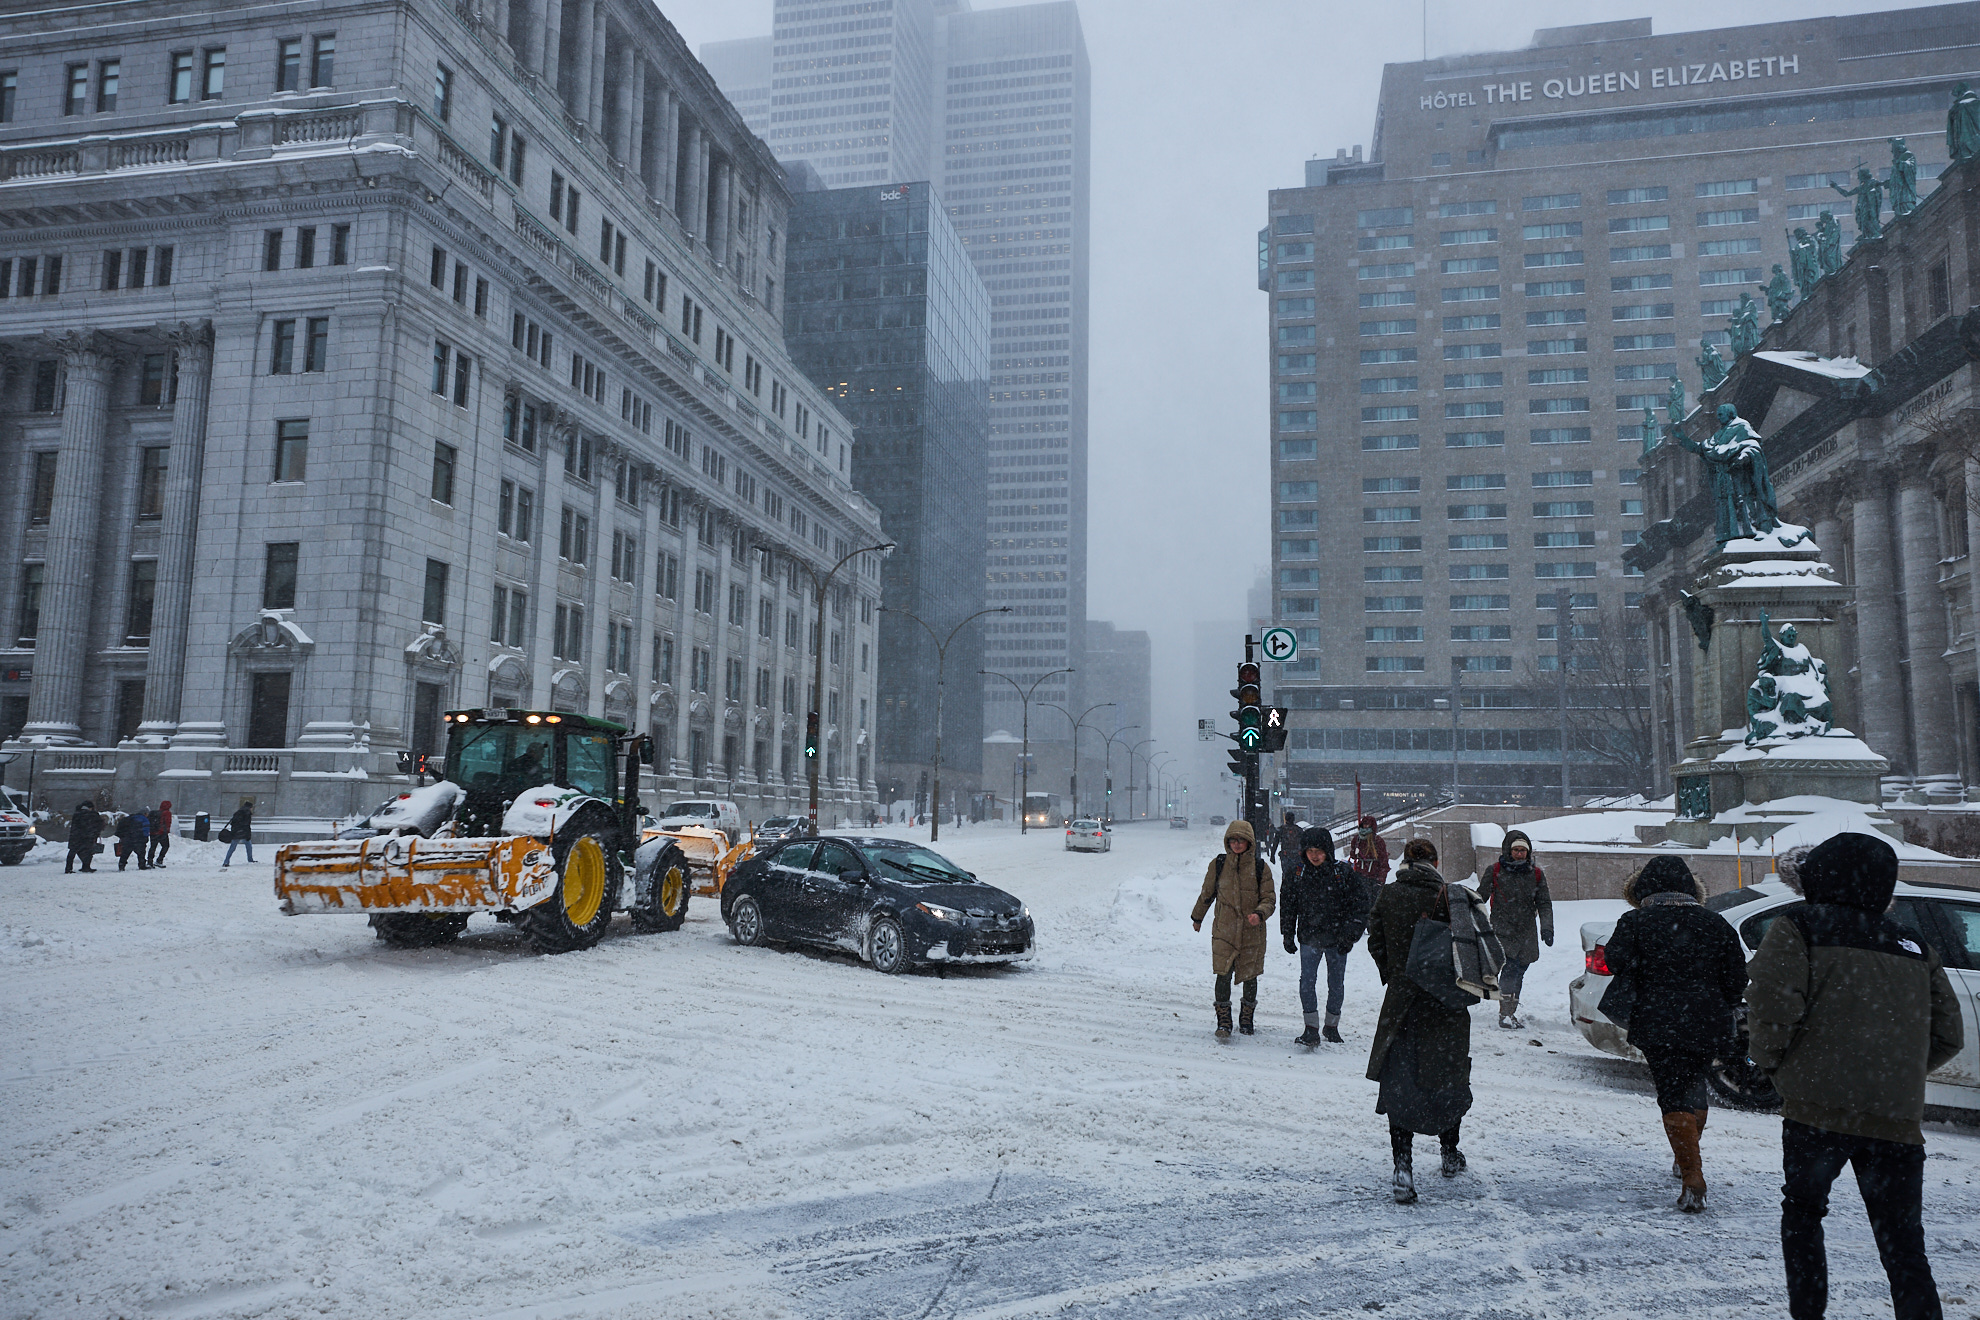 Pedestrians and cars cross a snowy intersection in downtown Montreal